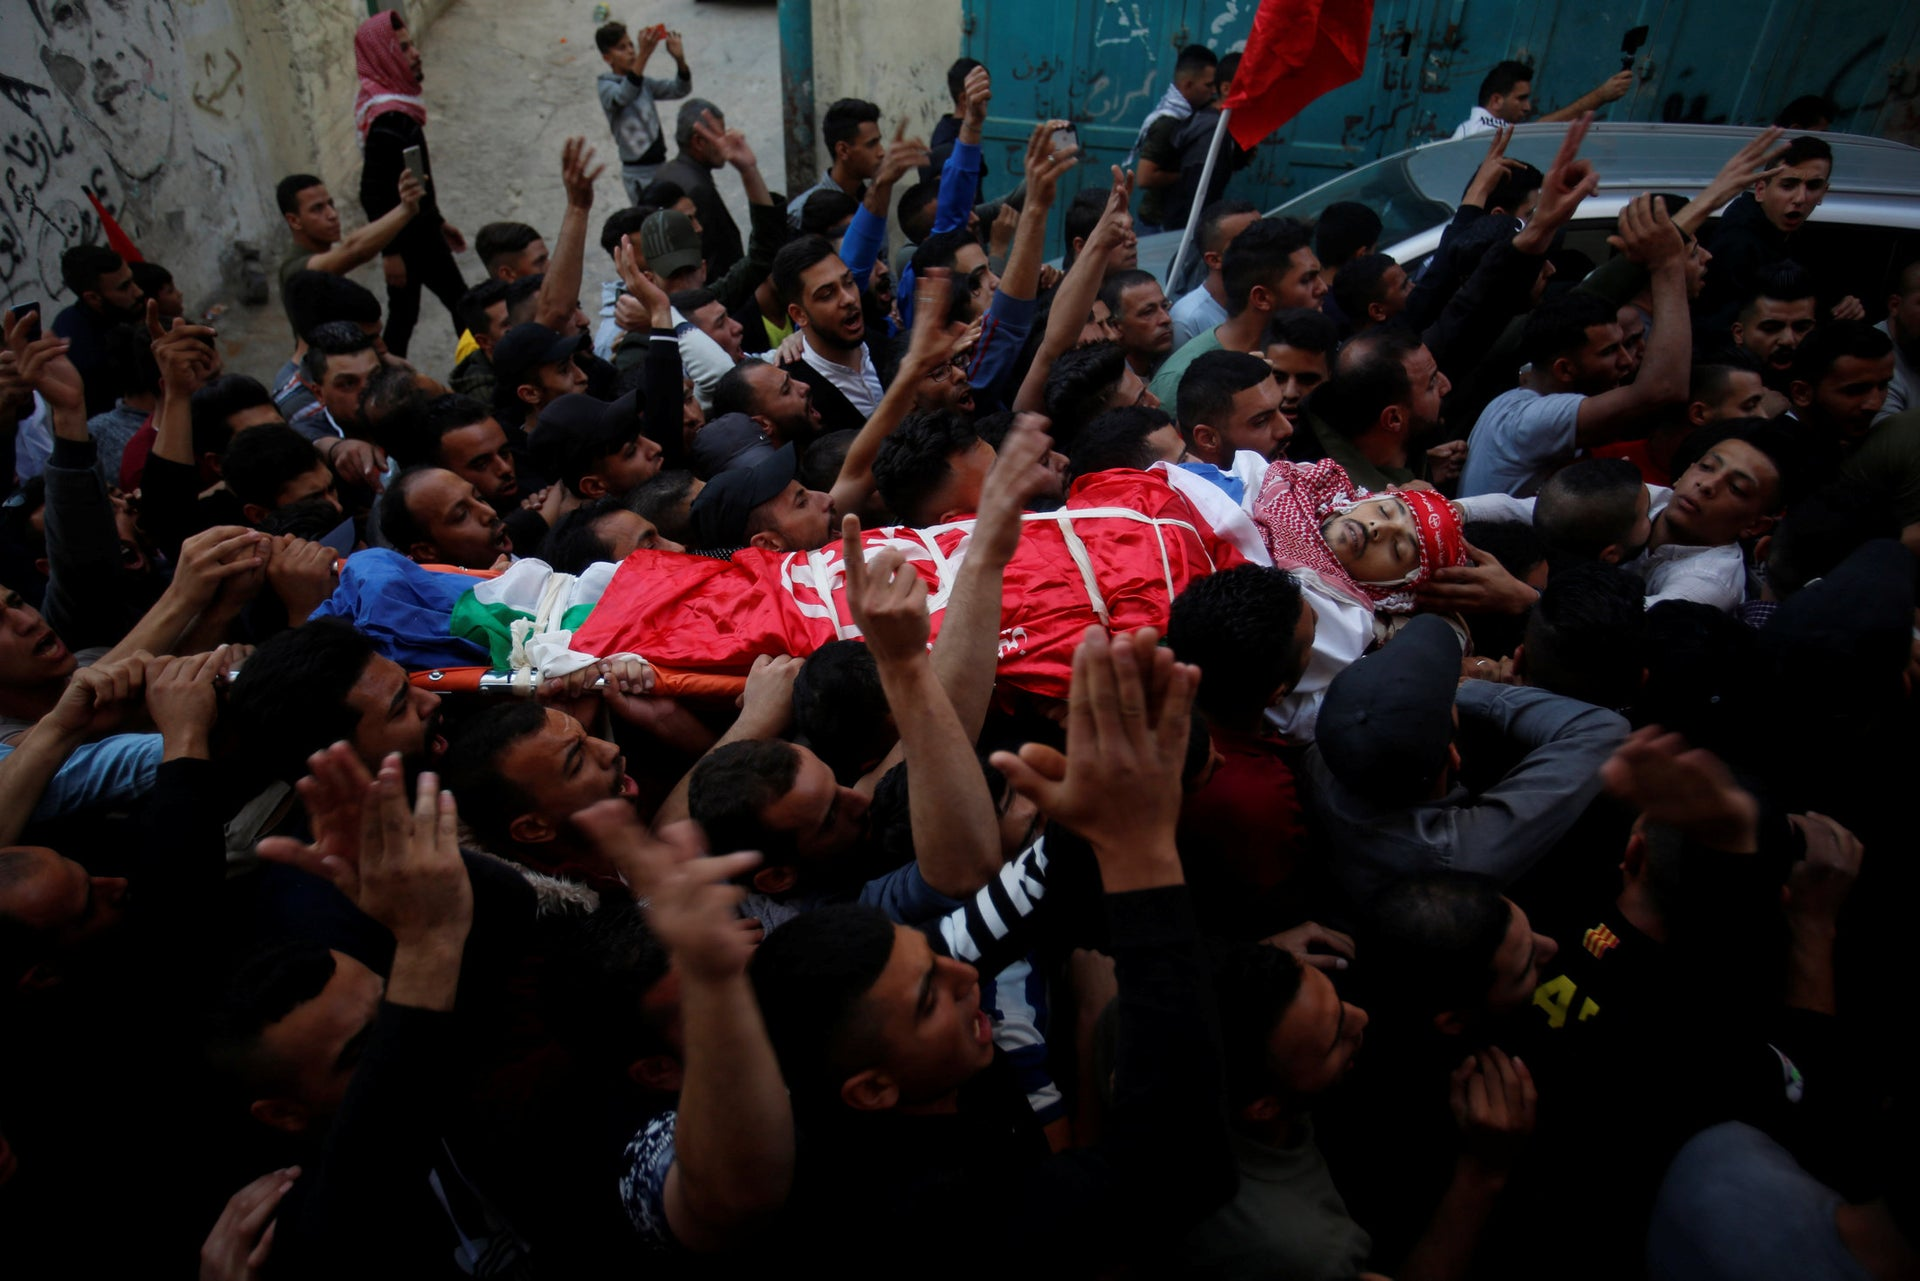 Palestinian mourners carry the body of Omar Badawi, 22, during his funeral at the al-Aroub refugee camp in the West Bank city of Hebron, Nov. 11, 2019.